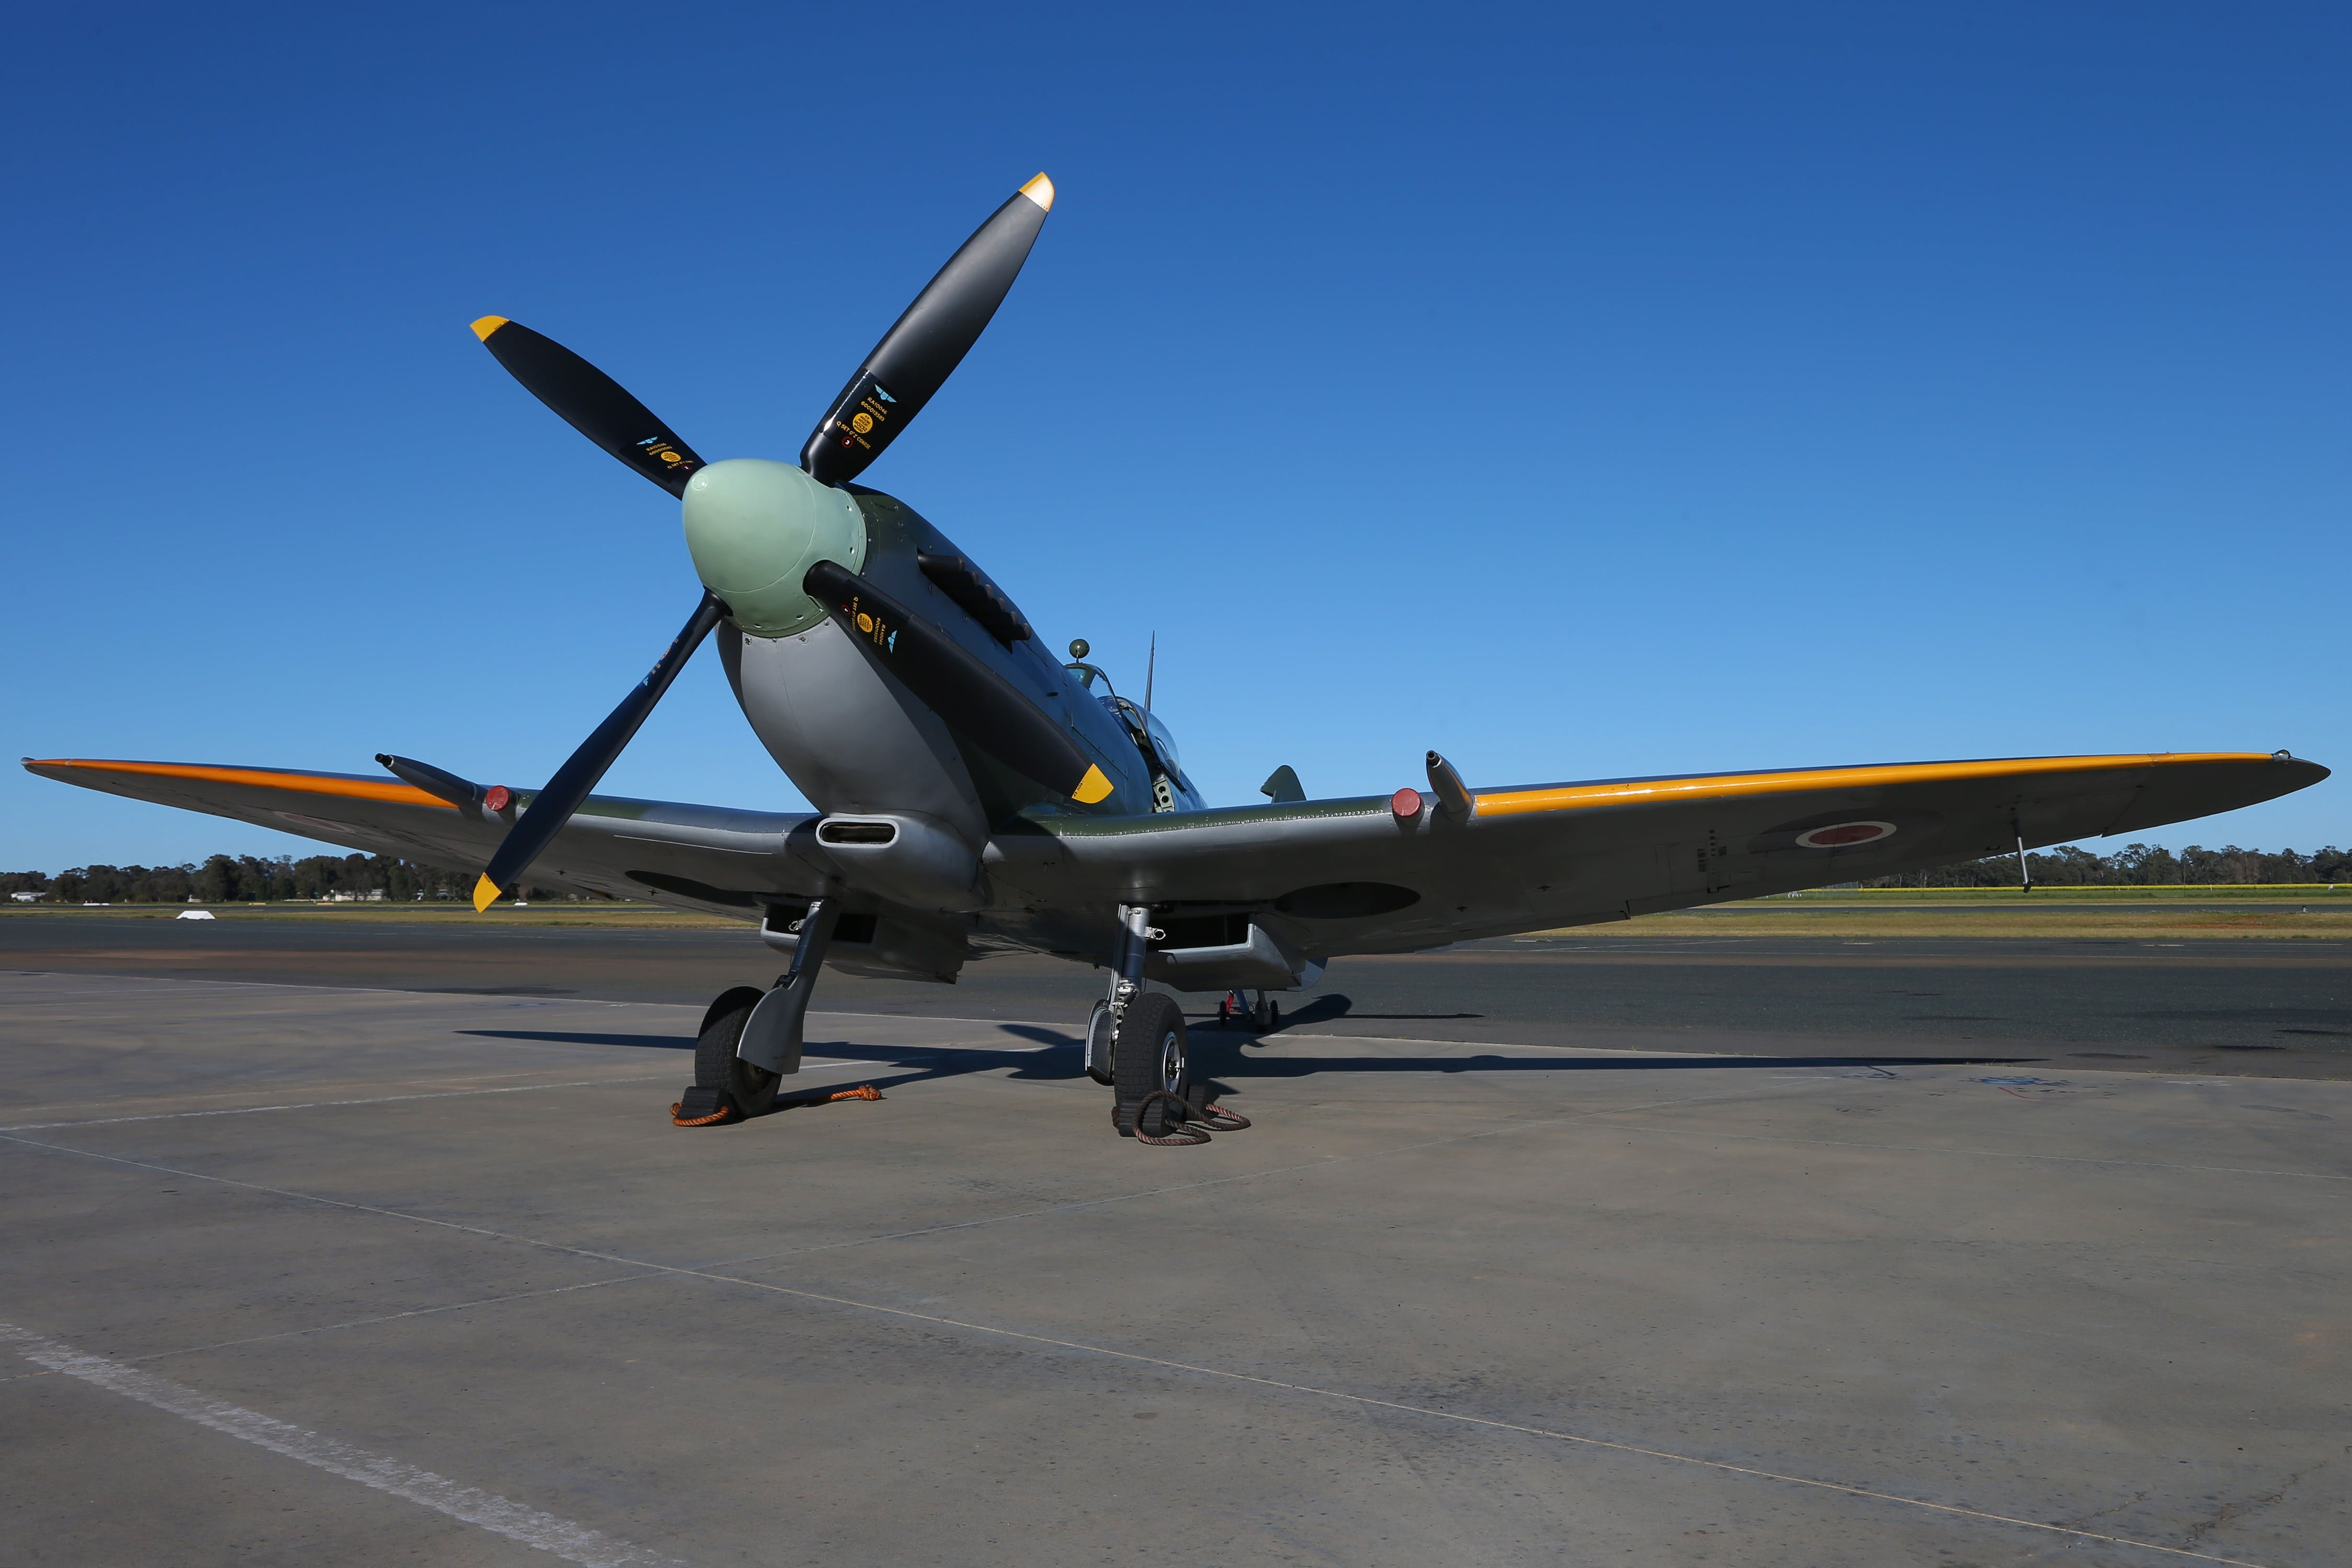 October Weekend Aircraft Showcase - Accommodation in Brisbane